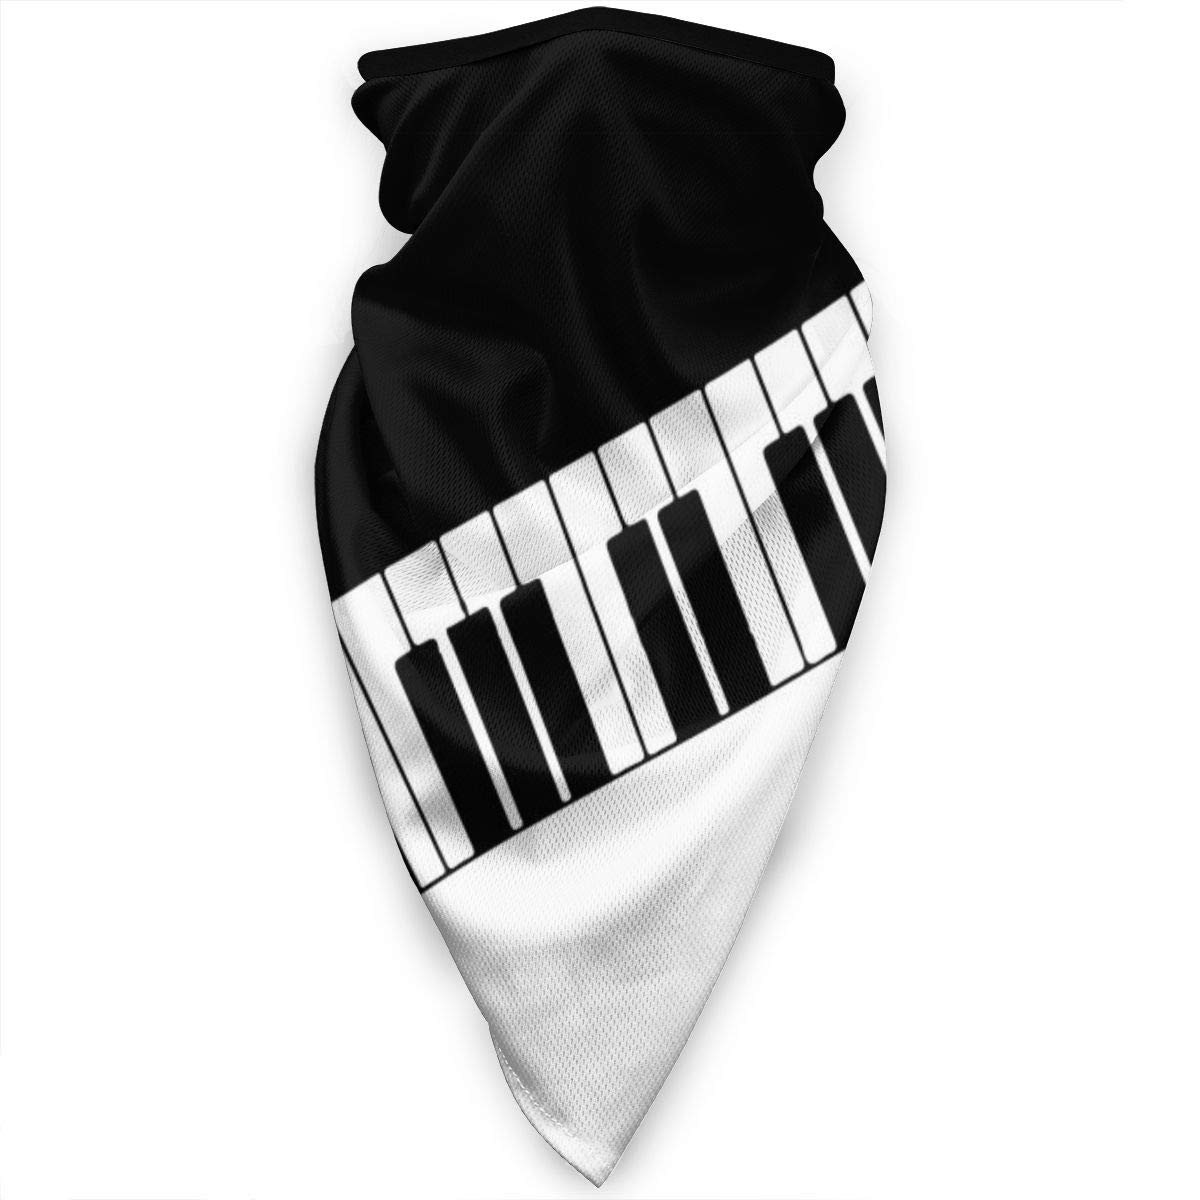 Piano Keys Neck Gaiter Warmer Windproof Face Mask Scarf Outdoor Sports Mask